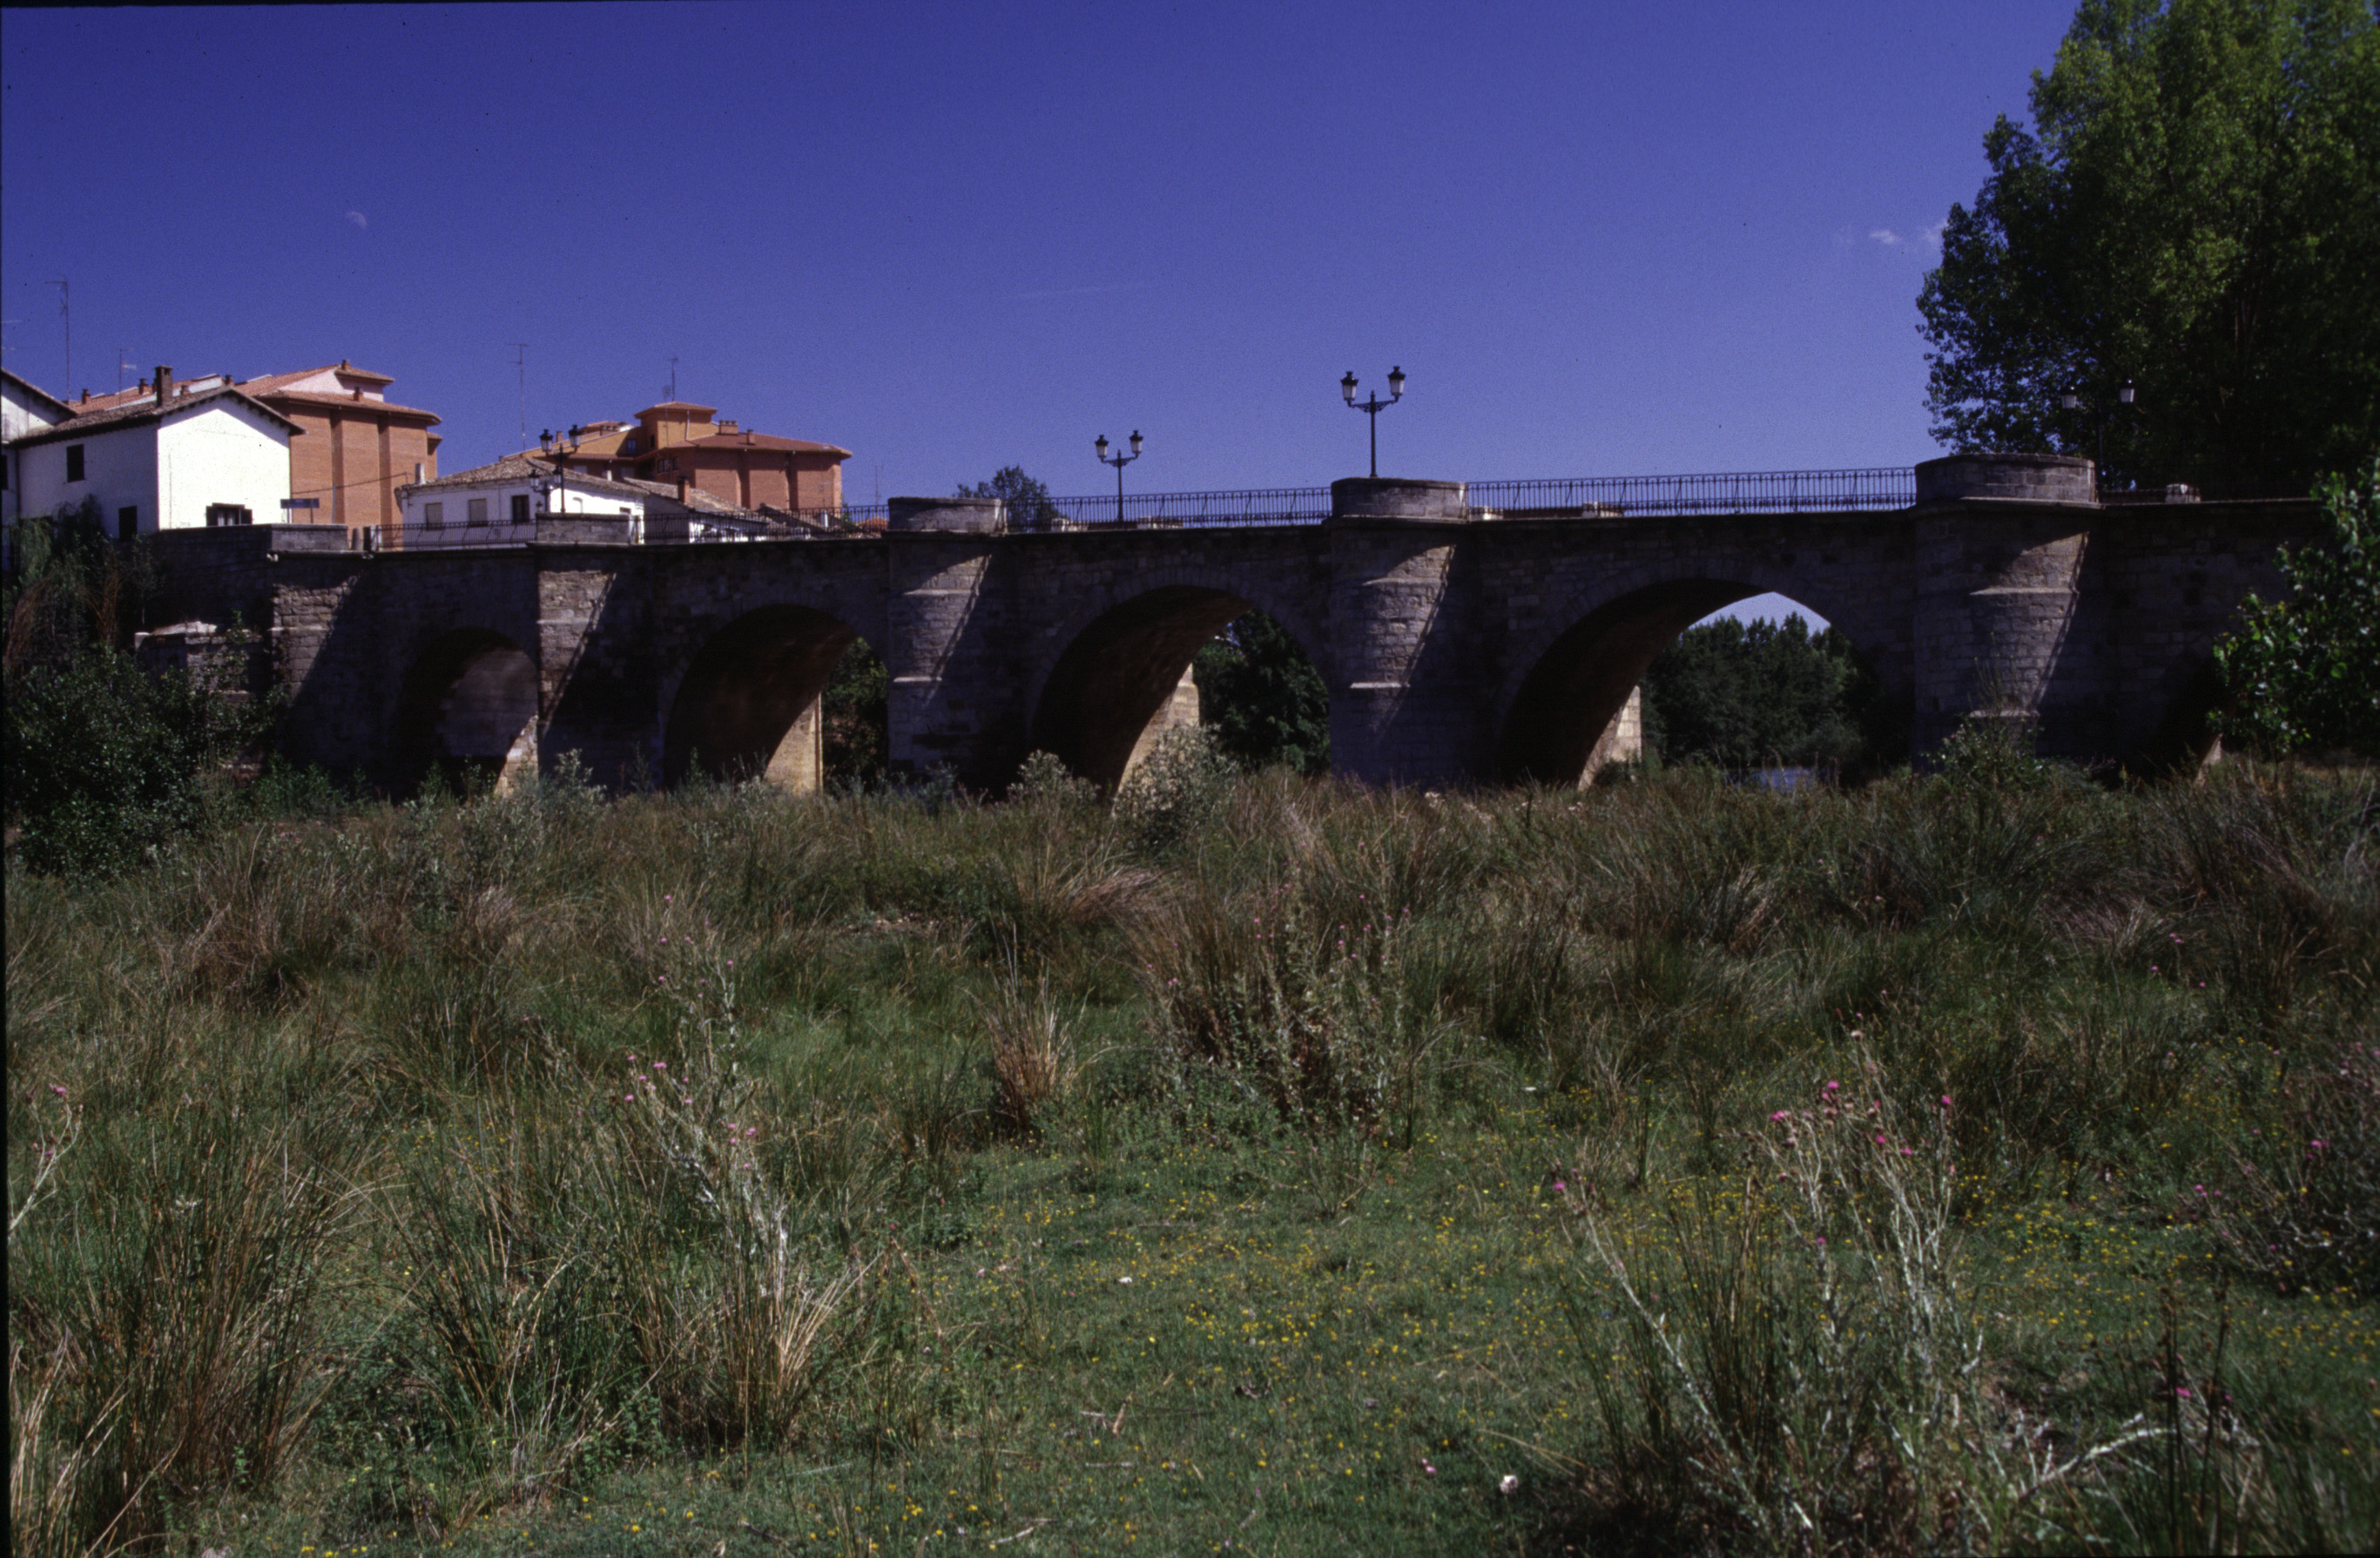 Bridge over the Río Carrión at night, in Carrión de los Condes